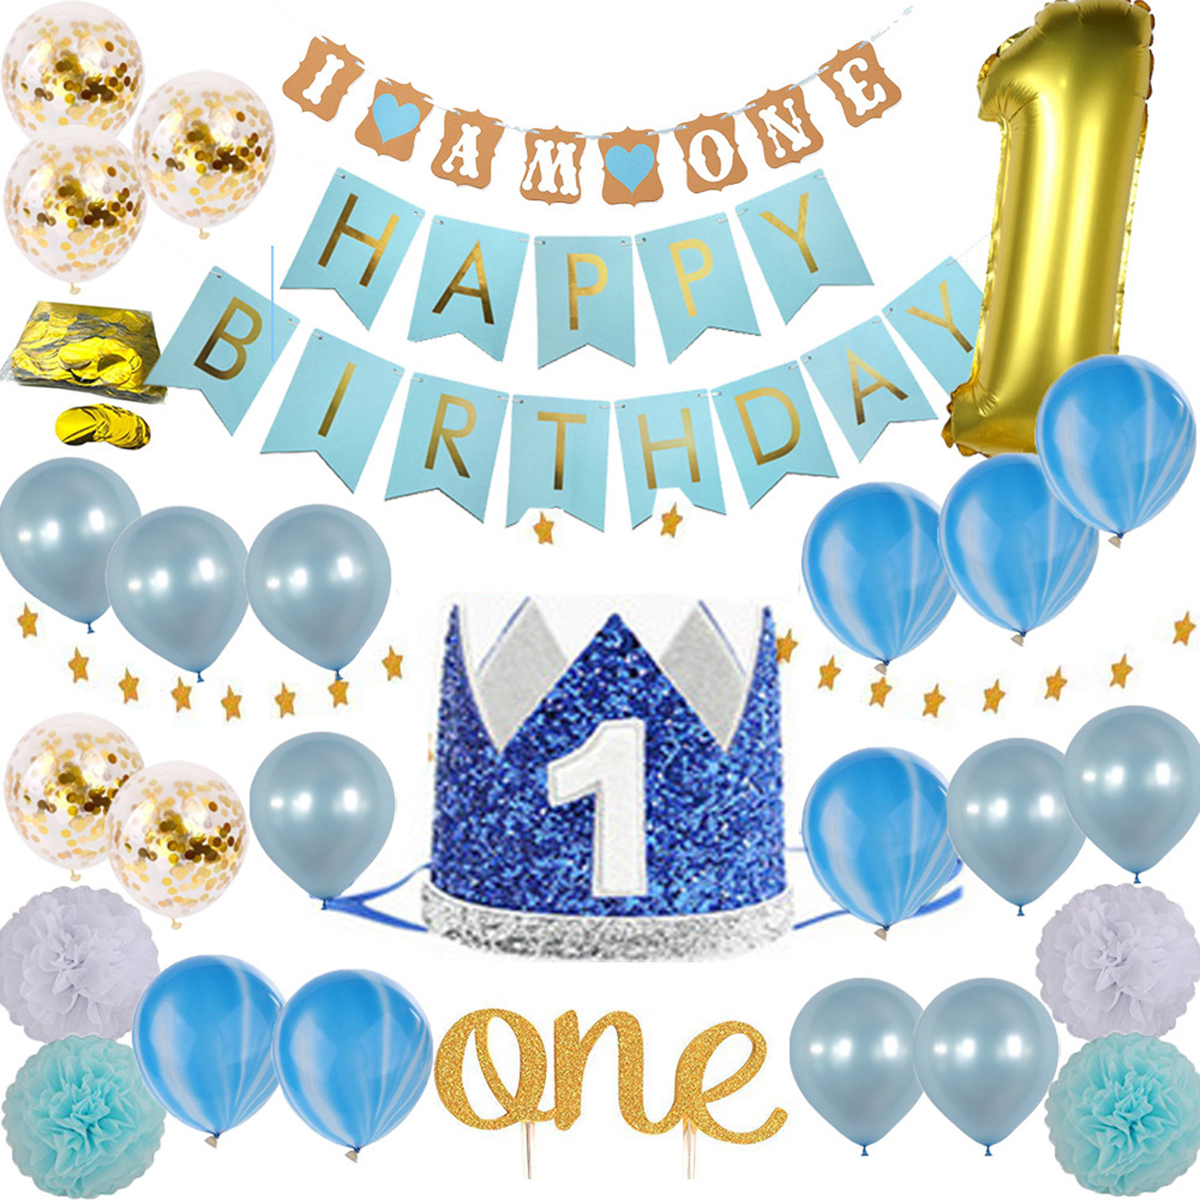 1st Birthday Party Decor Supplies Set Blue Pink Latex And Foil Balloons Cake Topper Happy Birthday Banner Paper Flowers